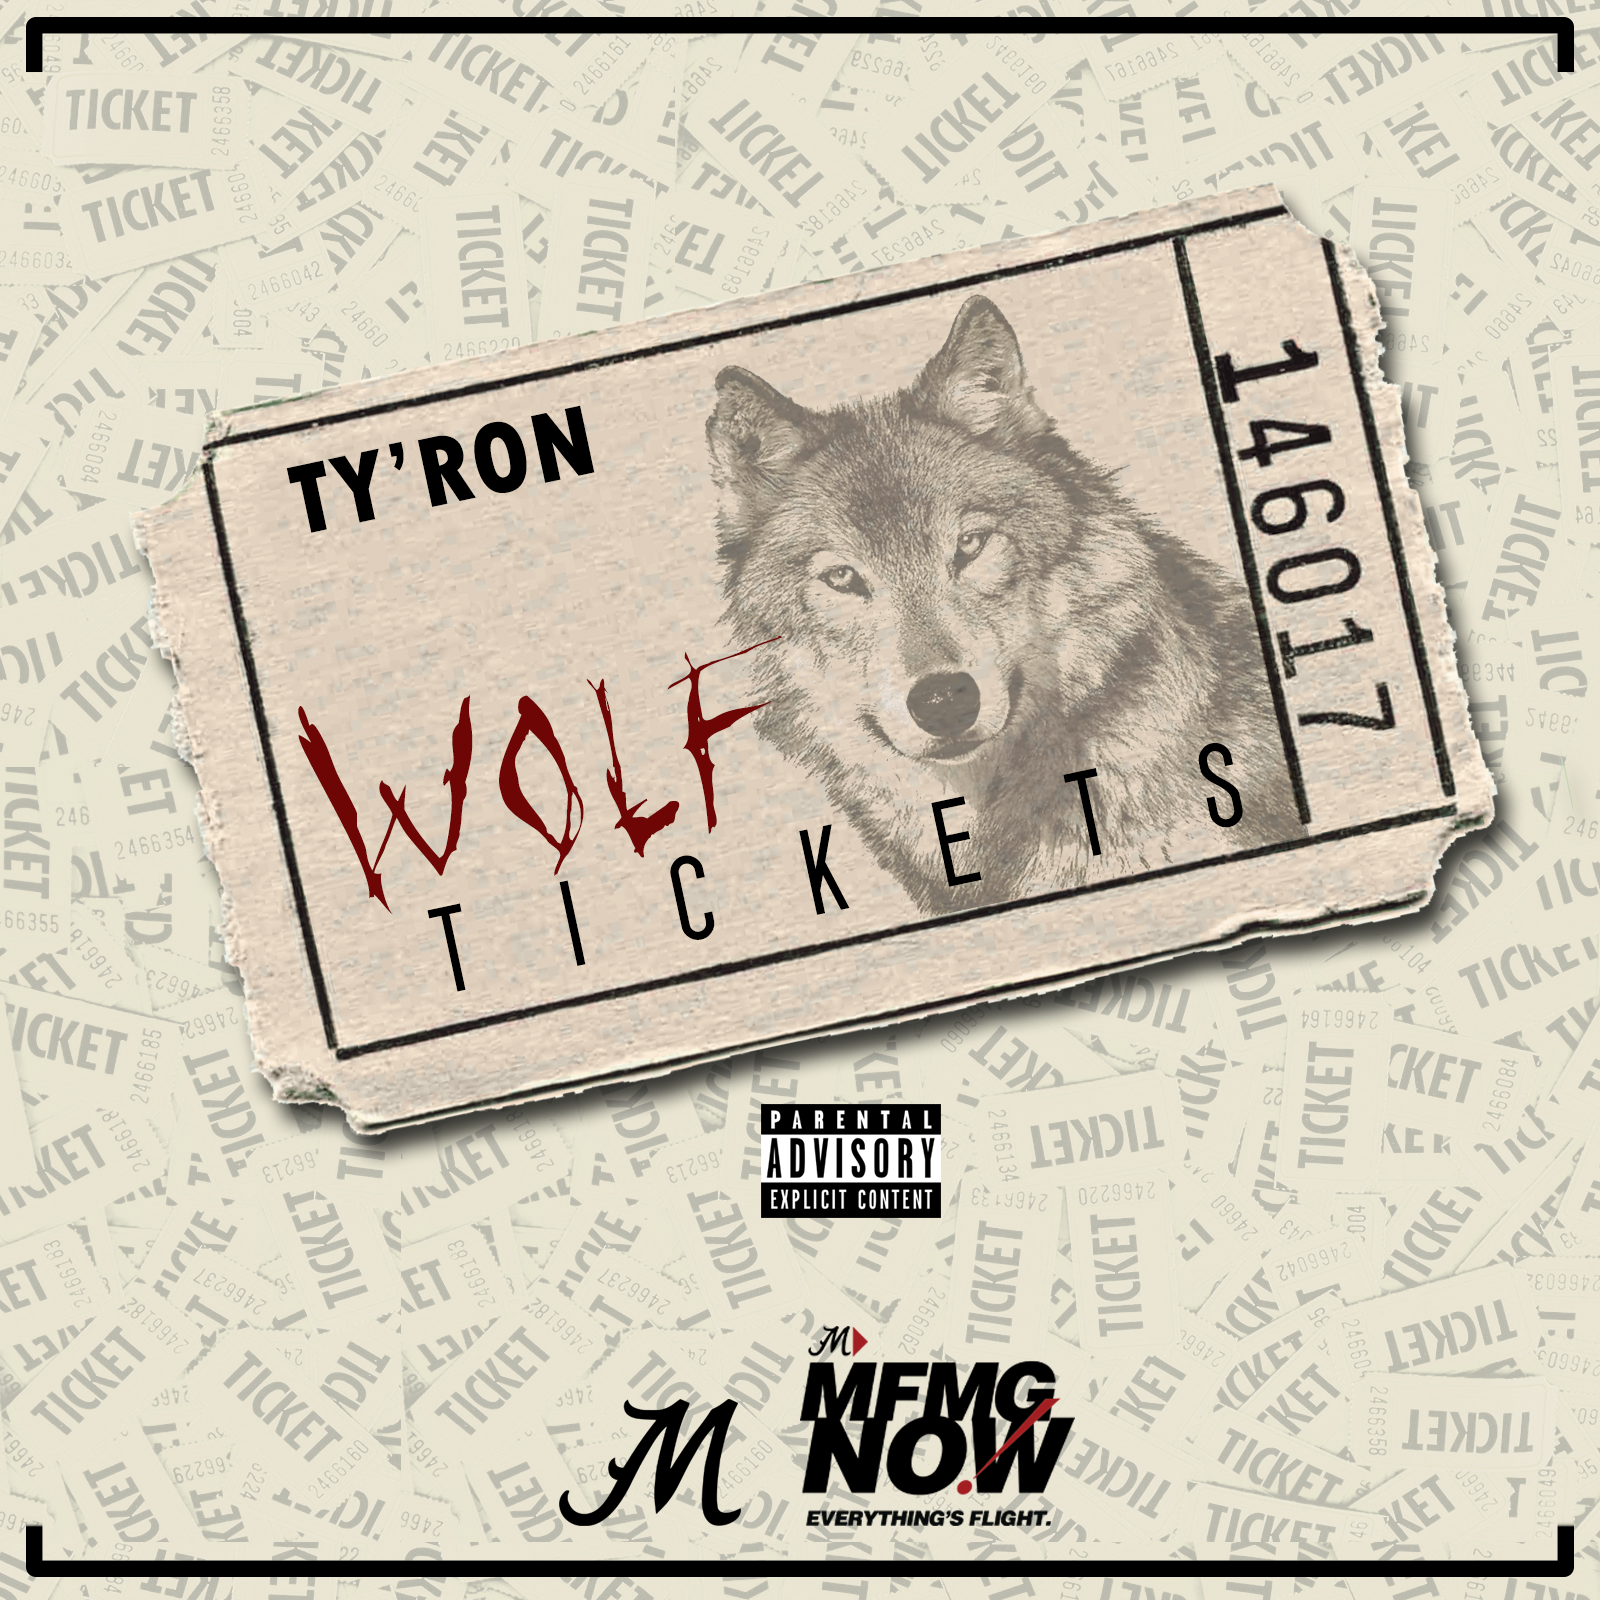 Ty'Ron – Wolf Tickets [single]